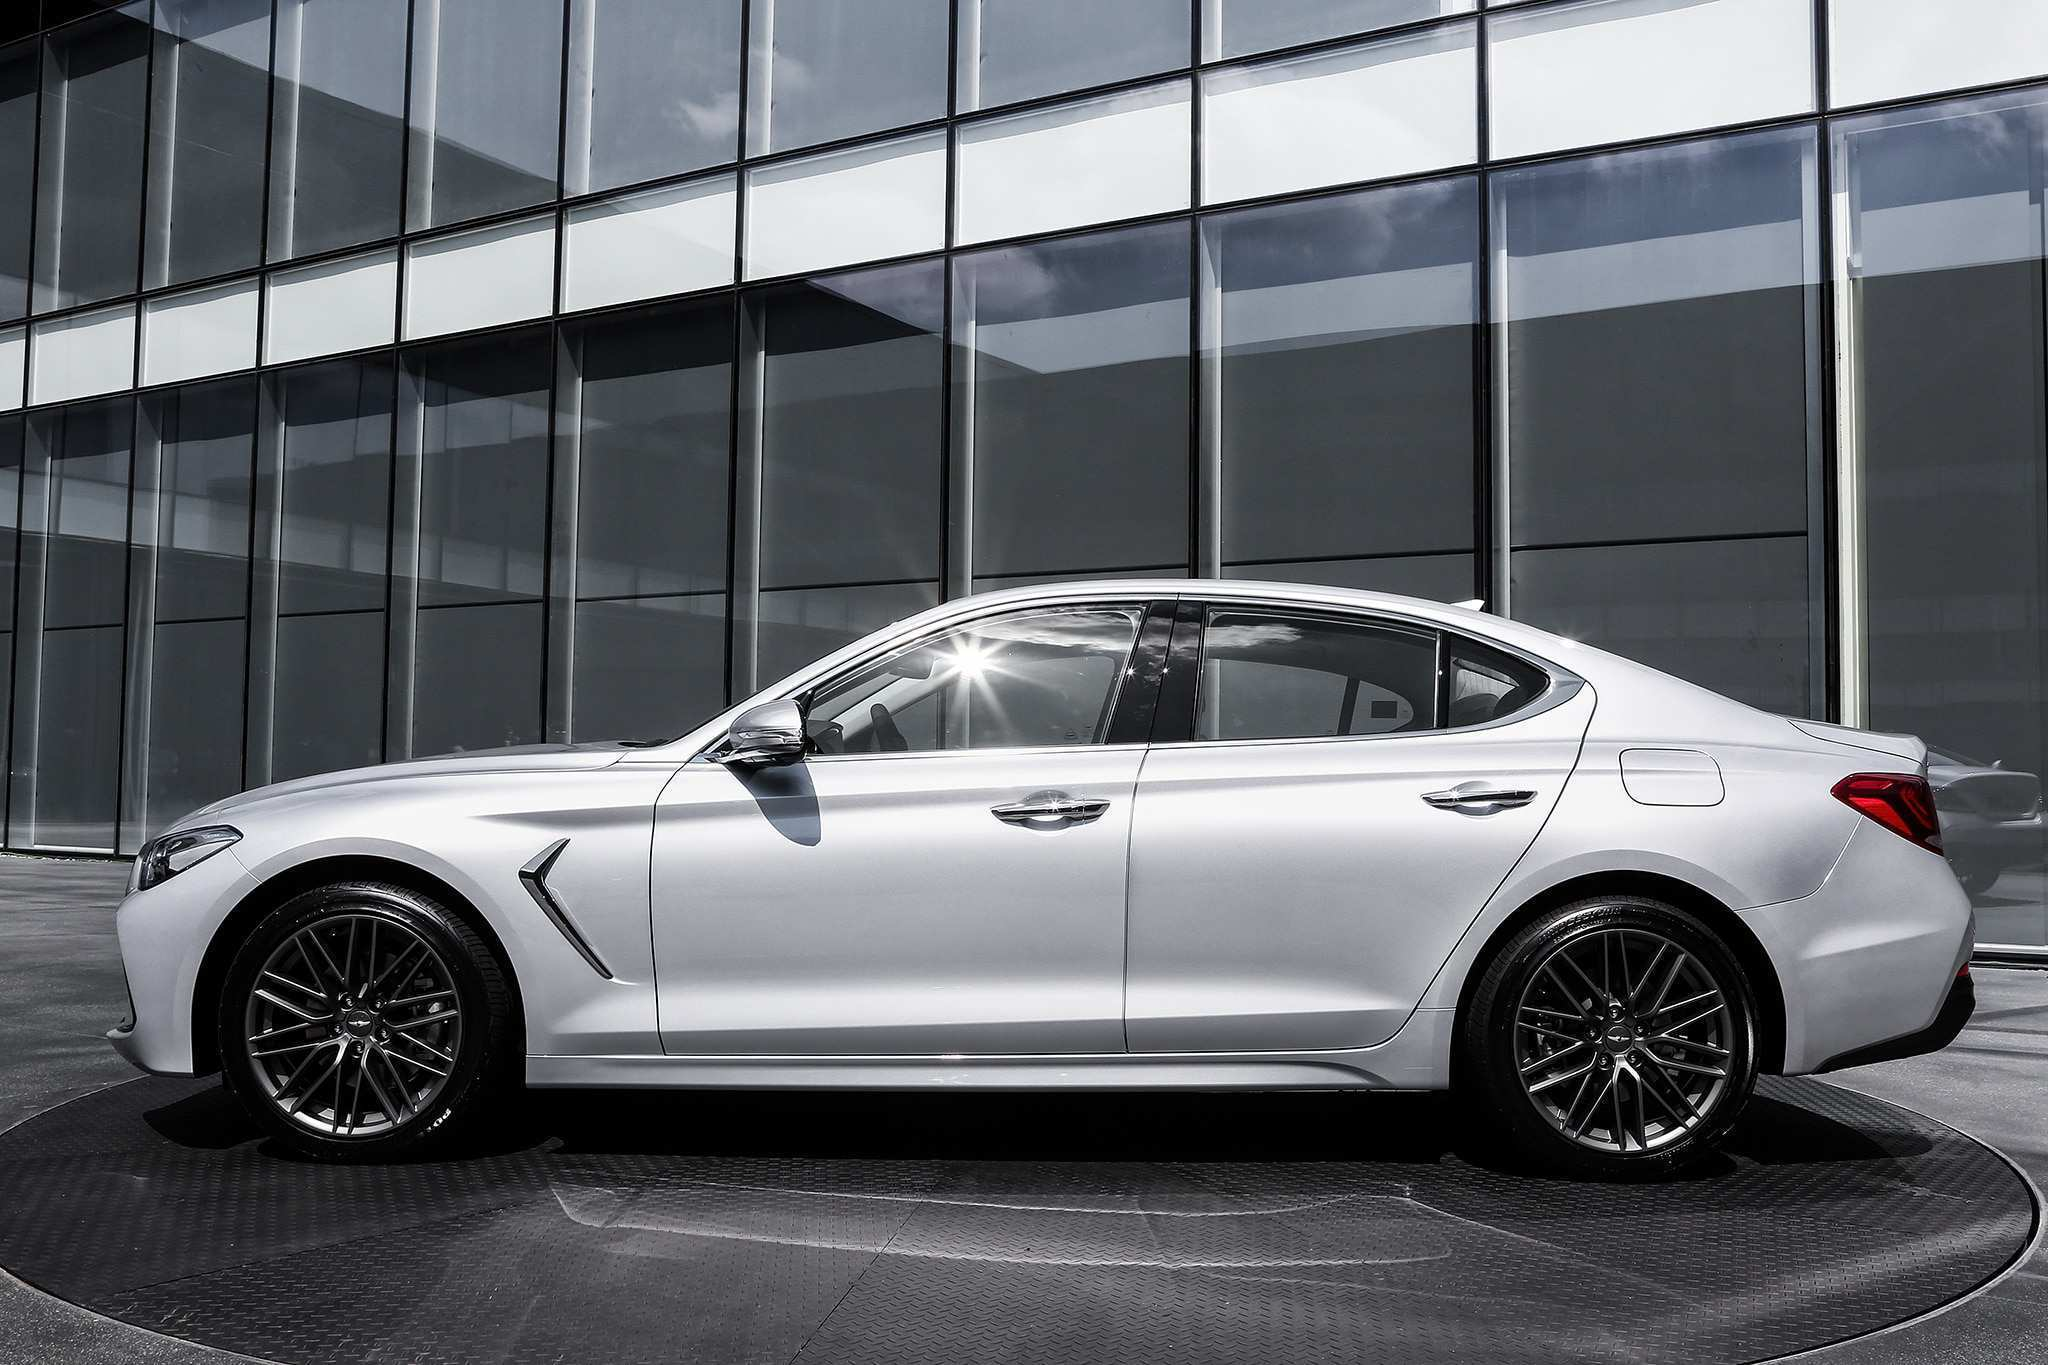 77 Gallery of 2019 Genesis G70 Specs Pictures for 2019 Genesis G70 Specs